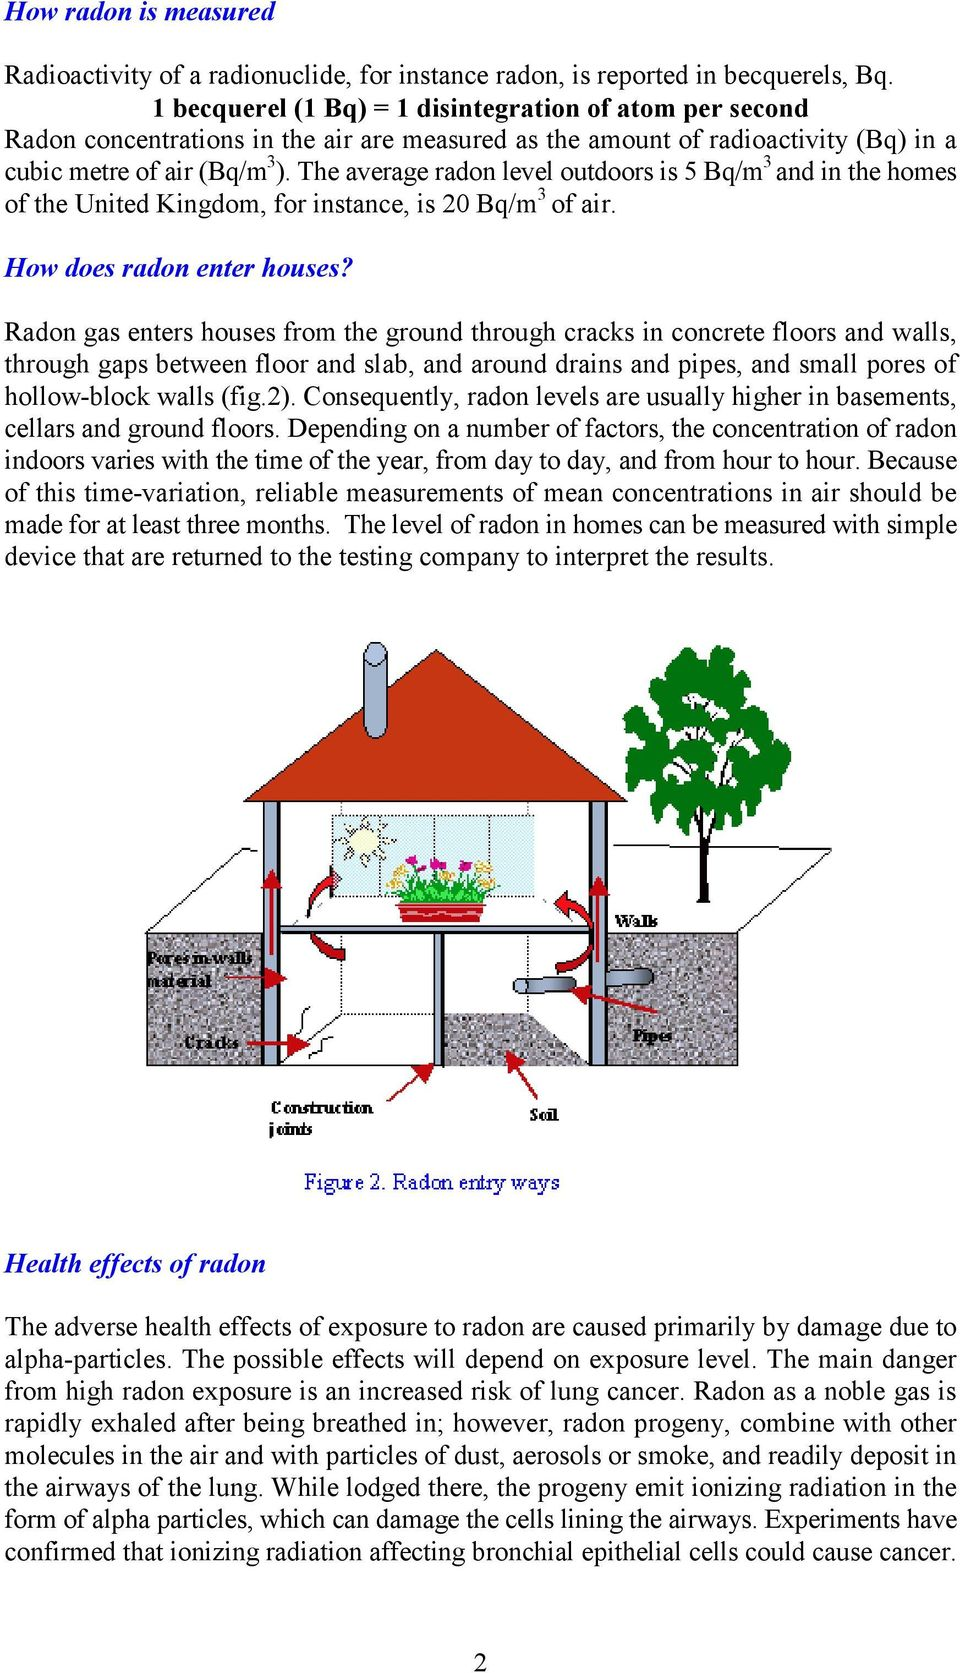 The average radon level outdoors is 5 Bq/m 3 and in the homes of the United Kingdom, for instance, is 20 Bq/m 3 of air. How does radon enter houses?